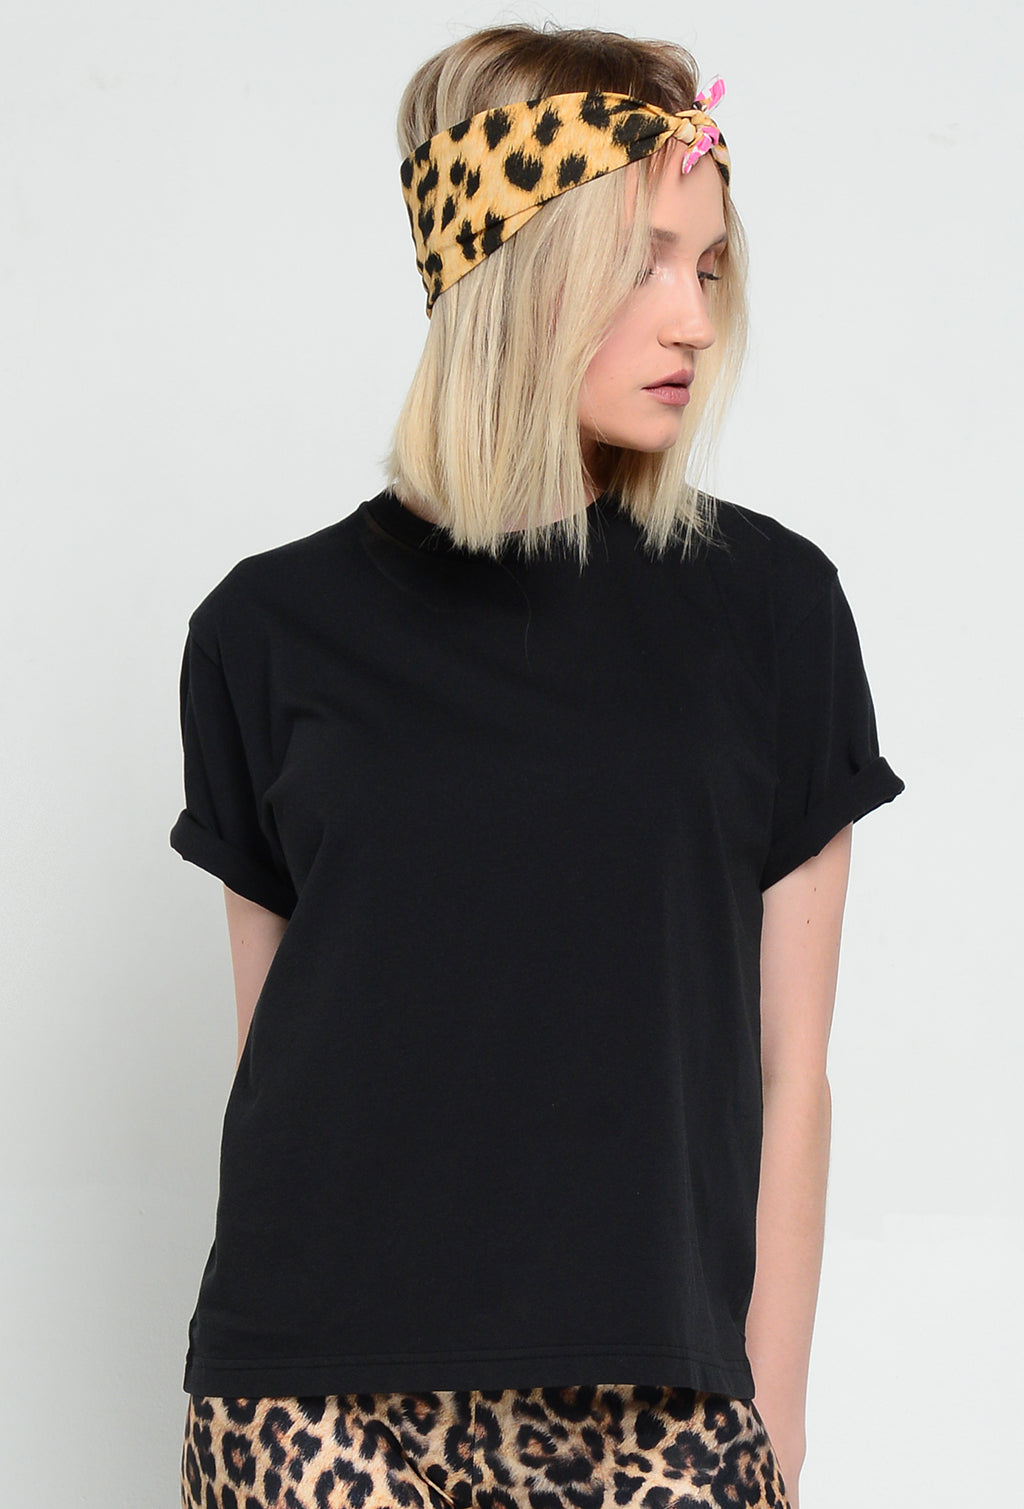 CUINO T-SHIRT BLACK